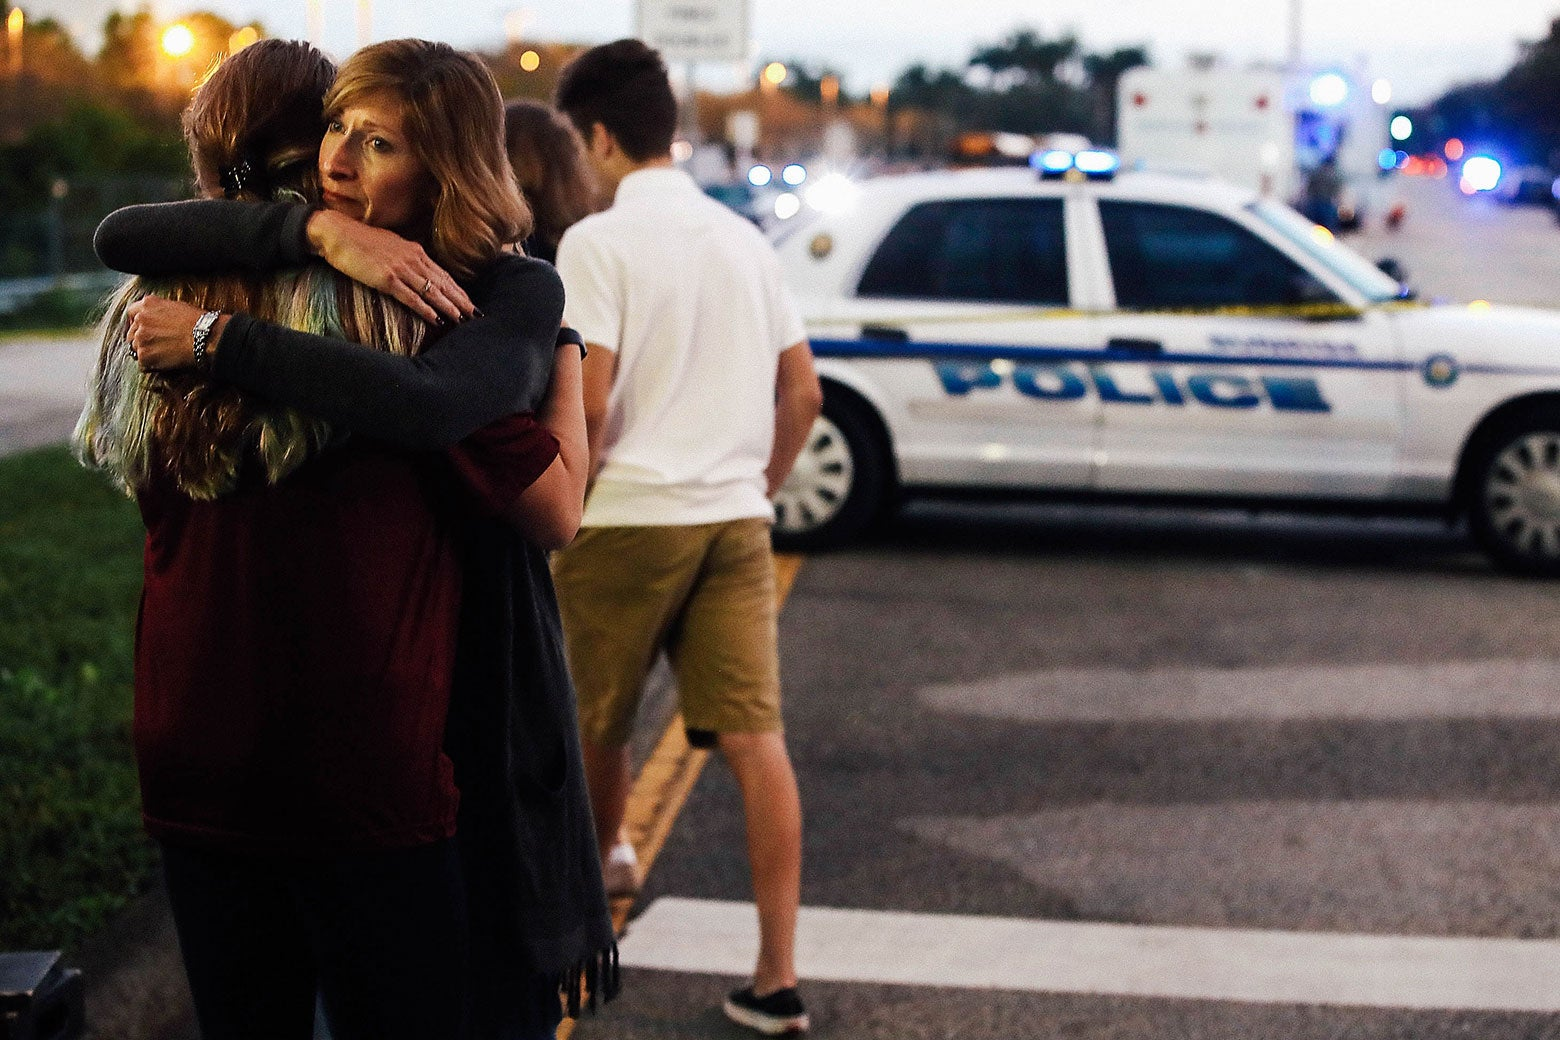 Kristi Gilroy hugs a young woman at a police checkpoint near Marjory Stoneman Douglas High School on Thursday in Parkland, Florida.